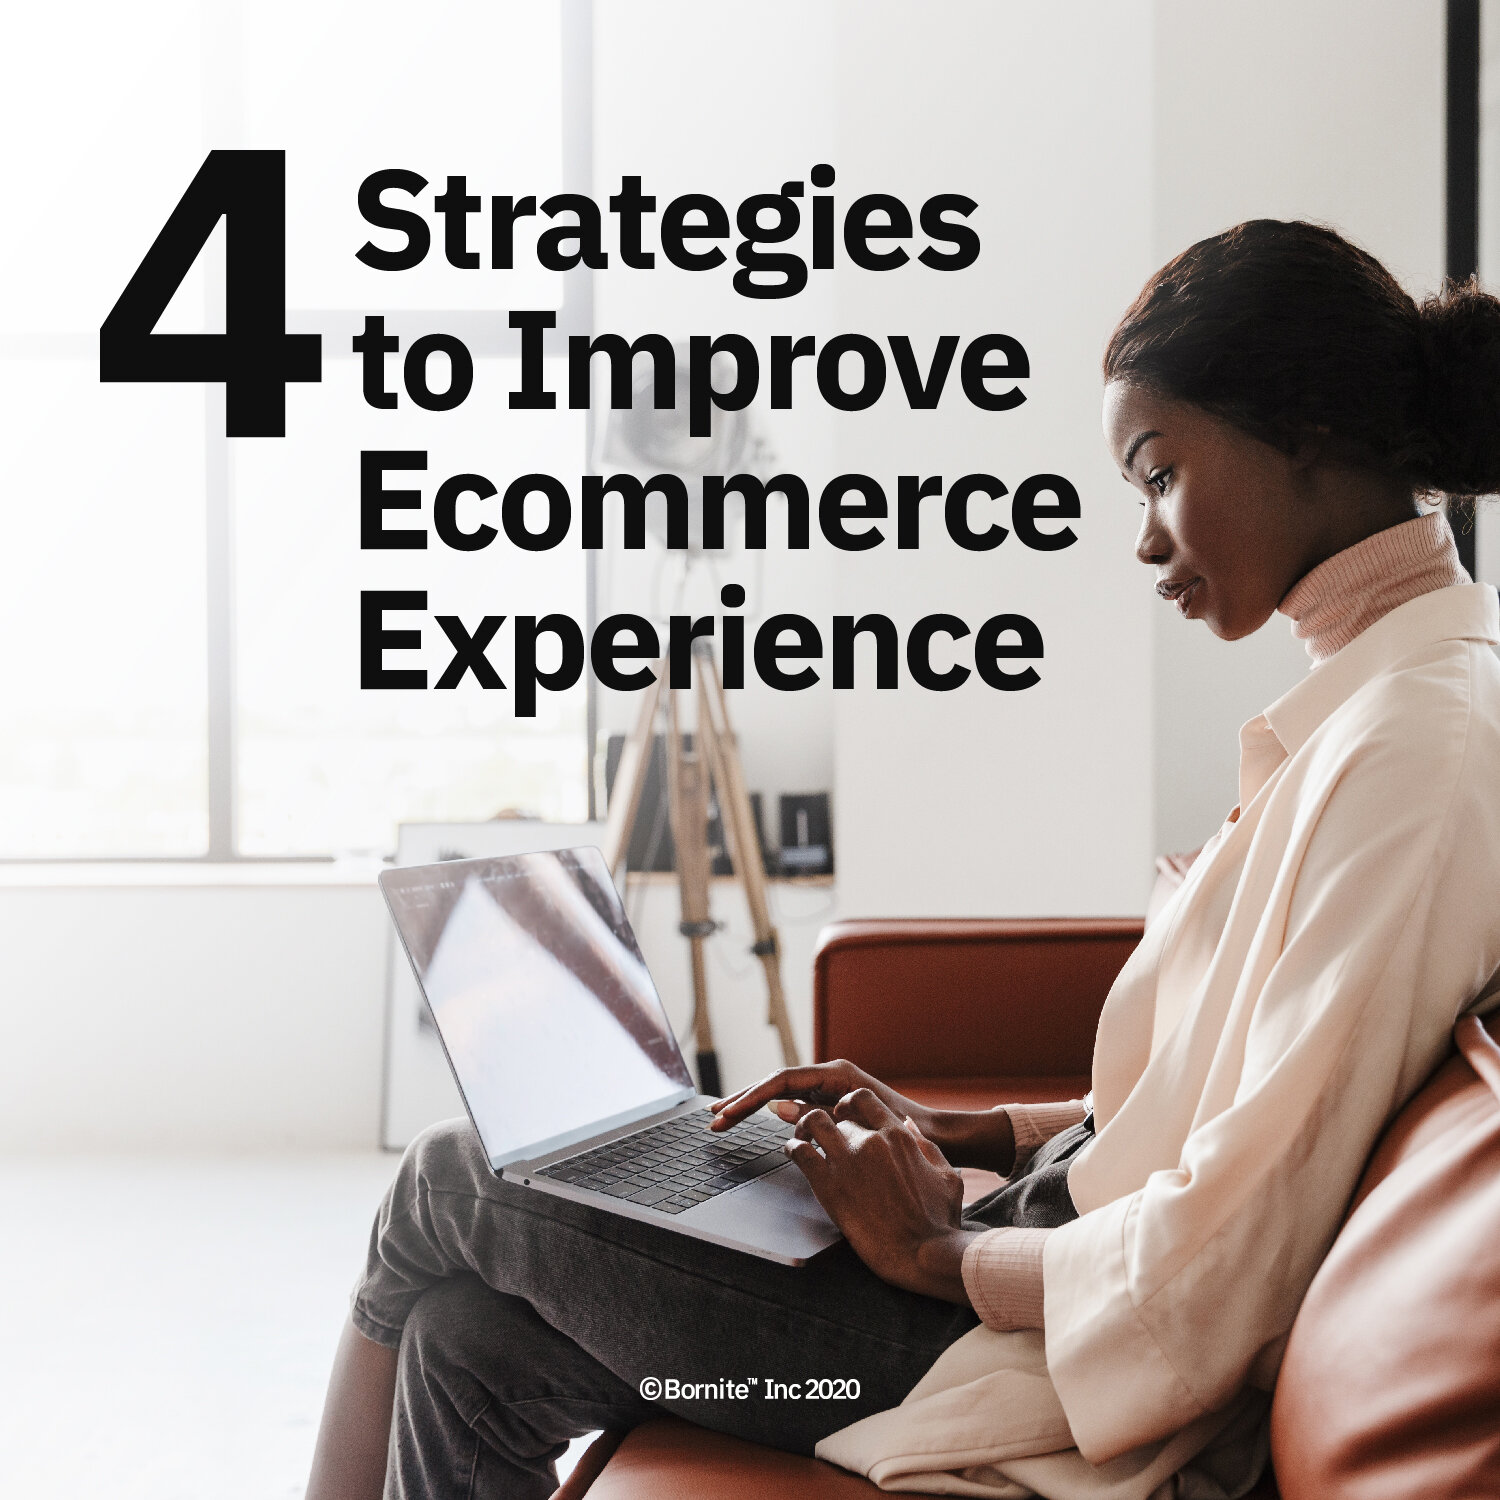 4 Strategies to Improve Ecommerce Experience